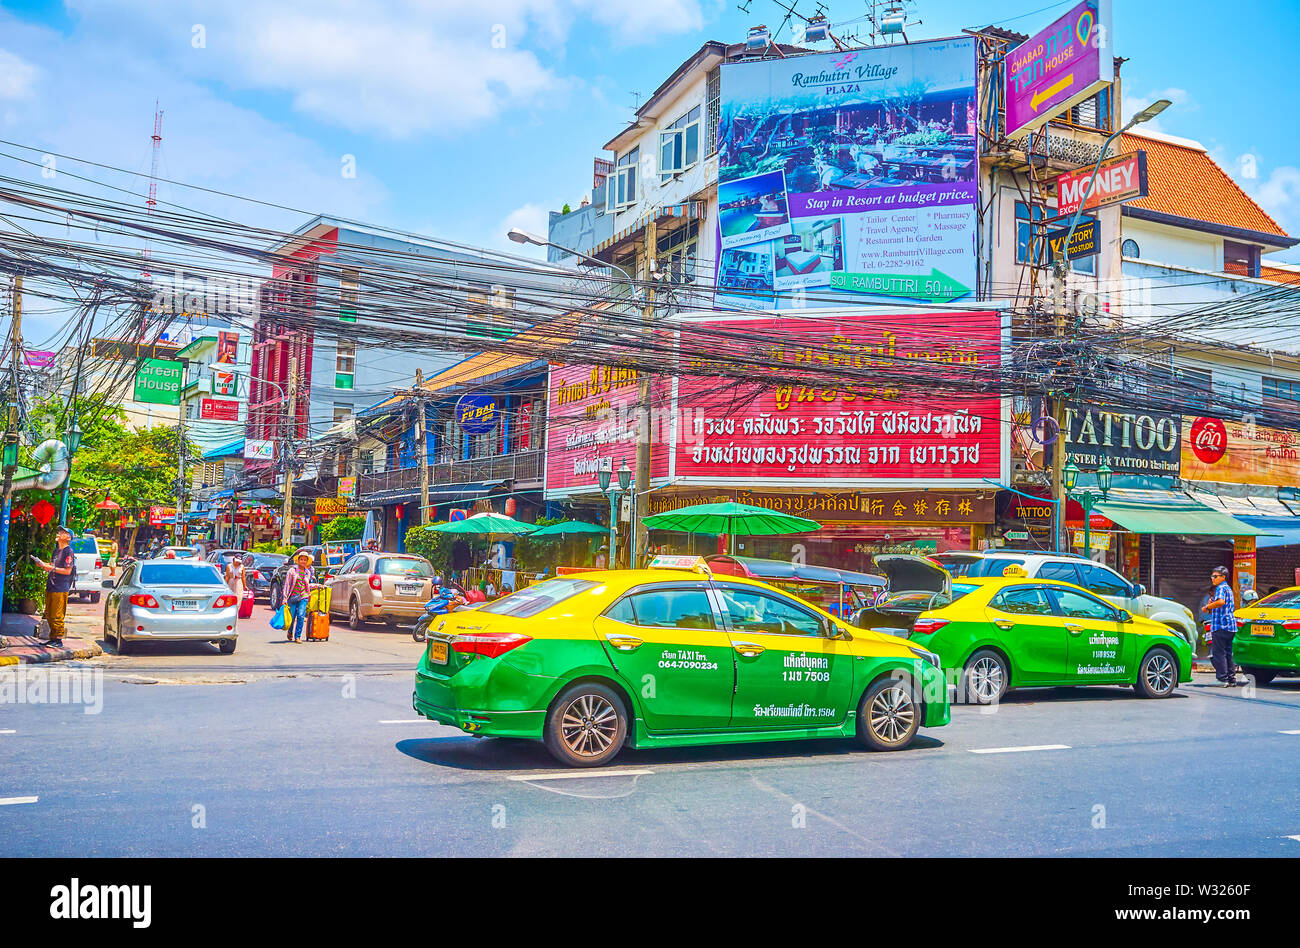 BANGKOK, THAILAND - APRIL 22, 2019: The Banglamphu is one of the most popular tourist district in the city and the best place to relax in numerous caf - Stock Image